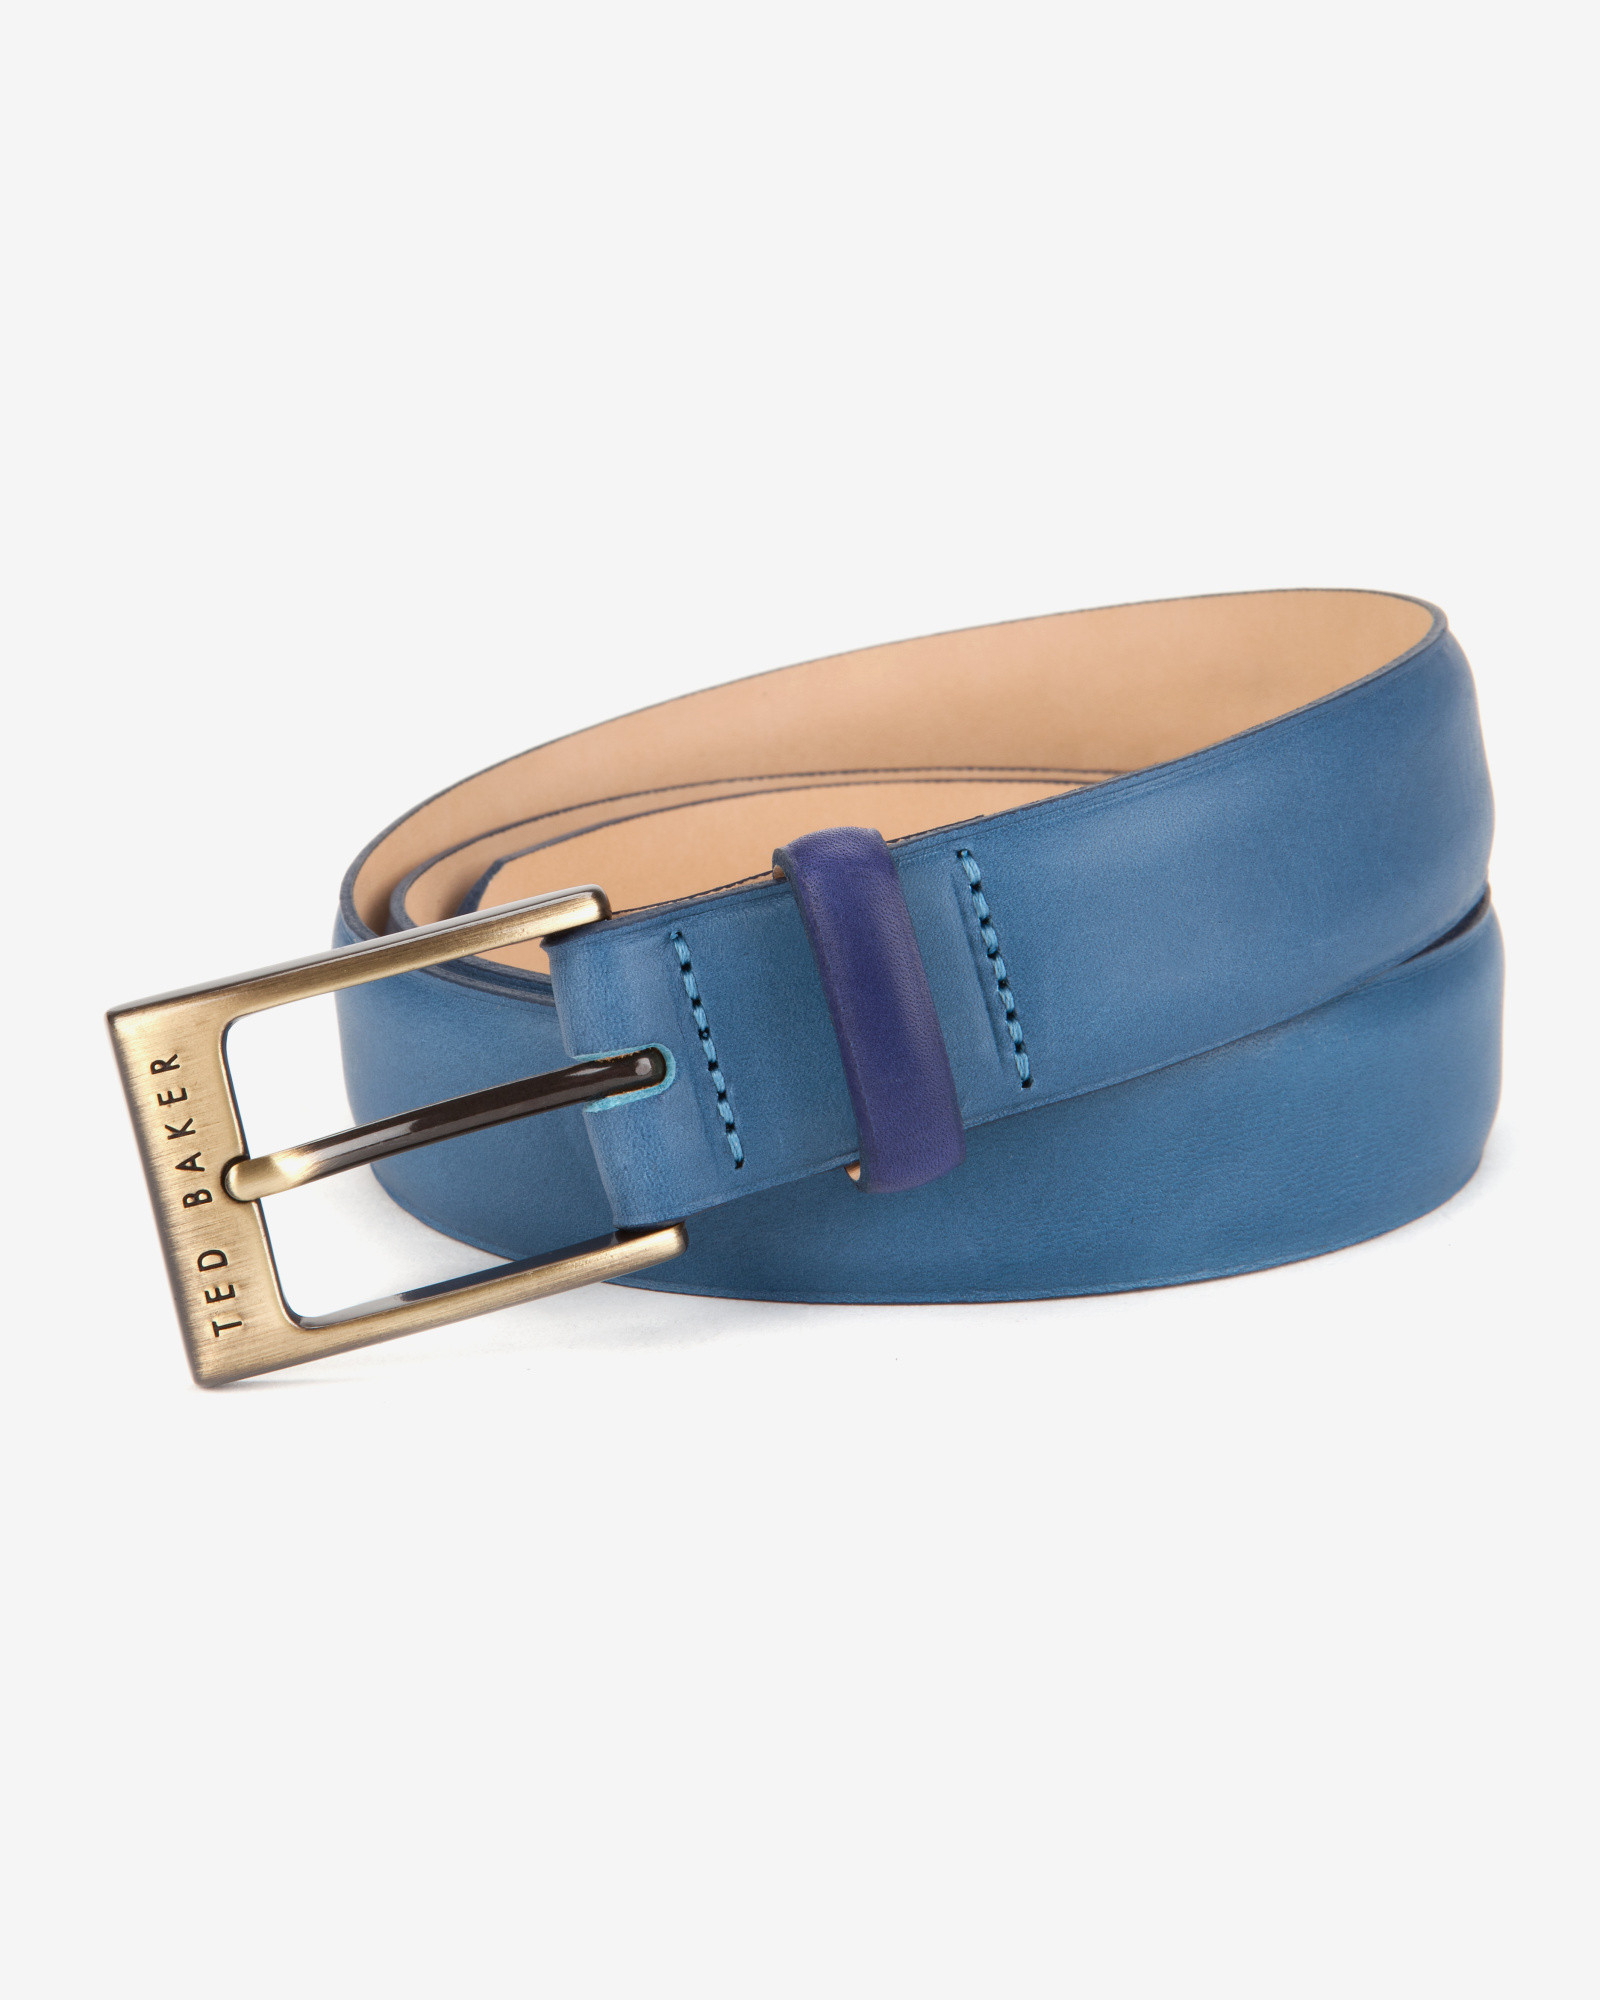 fca41f9f0e95 Ted Baker Bright Leather Belt in Blue for Men - Lyst